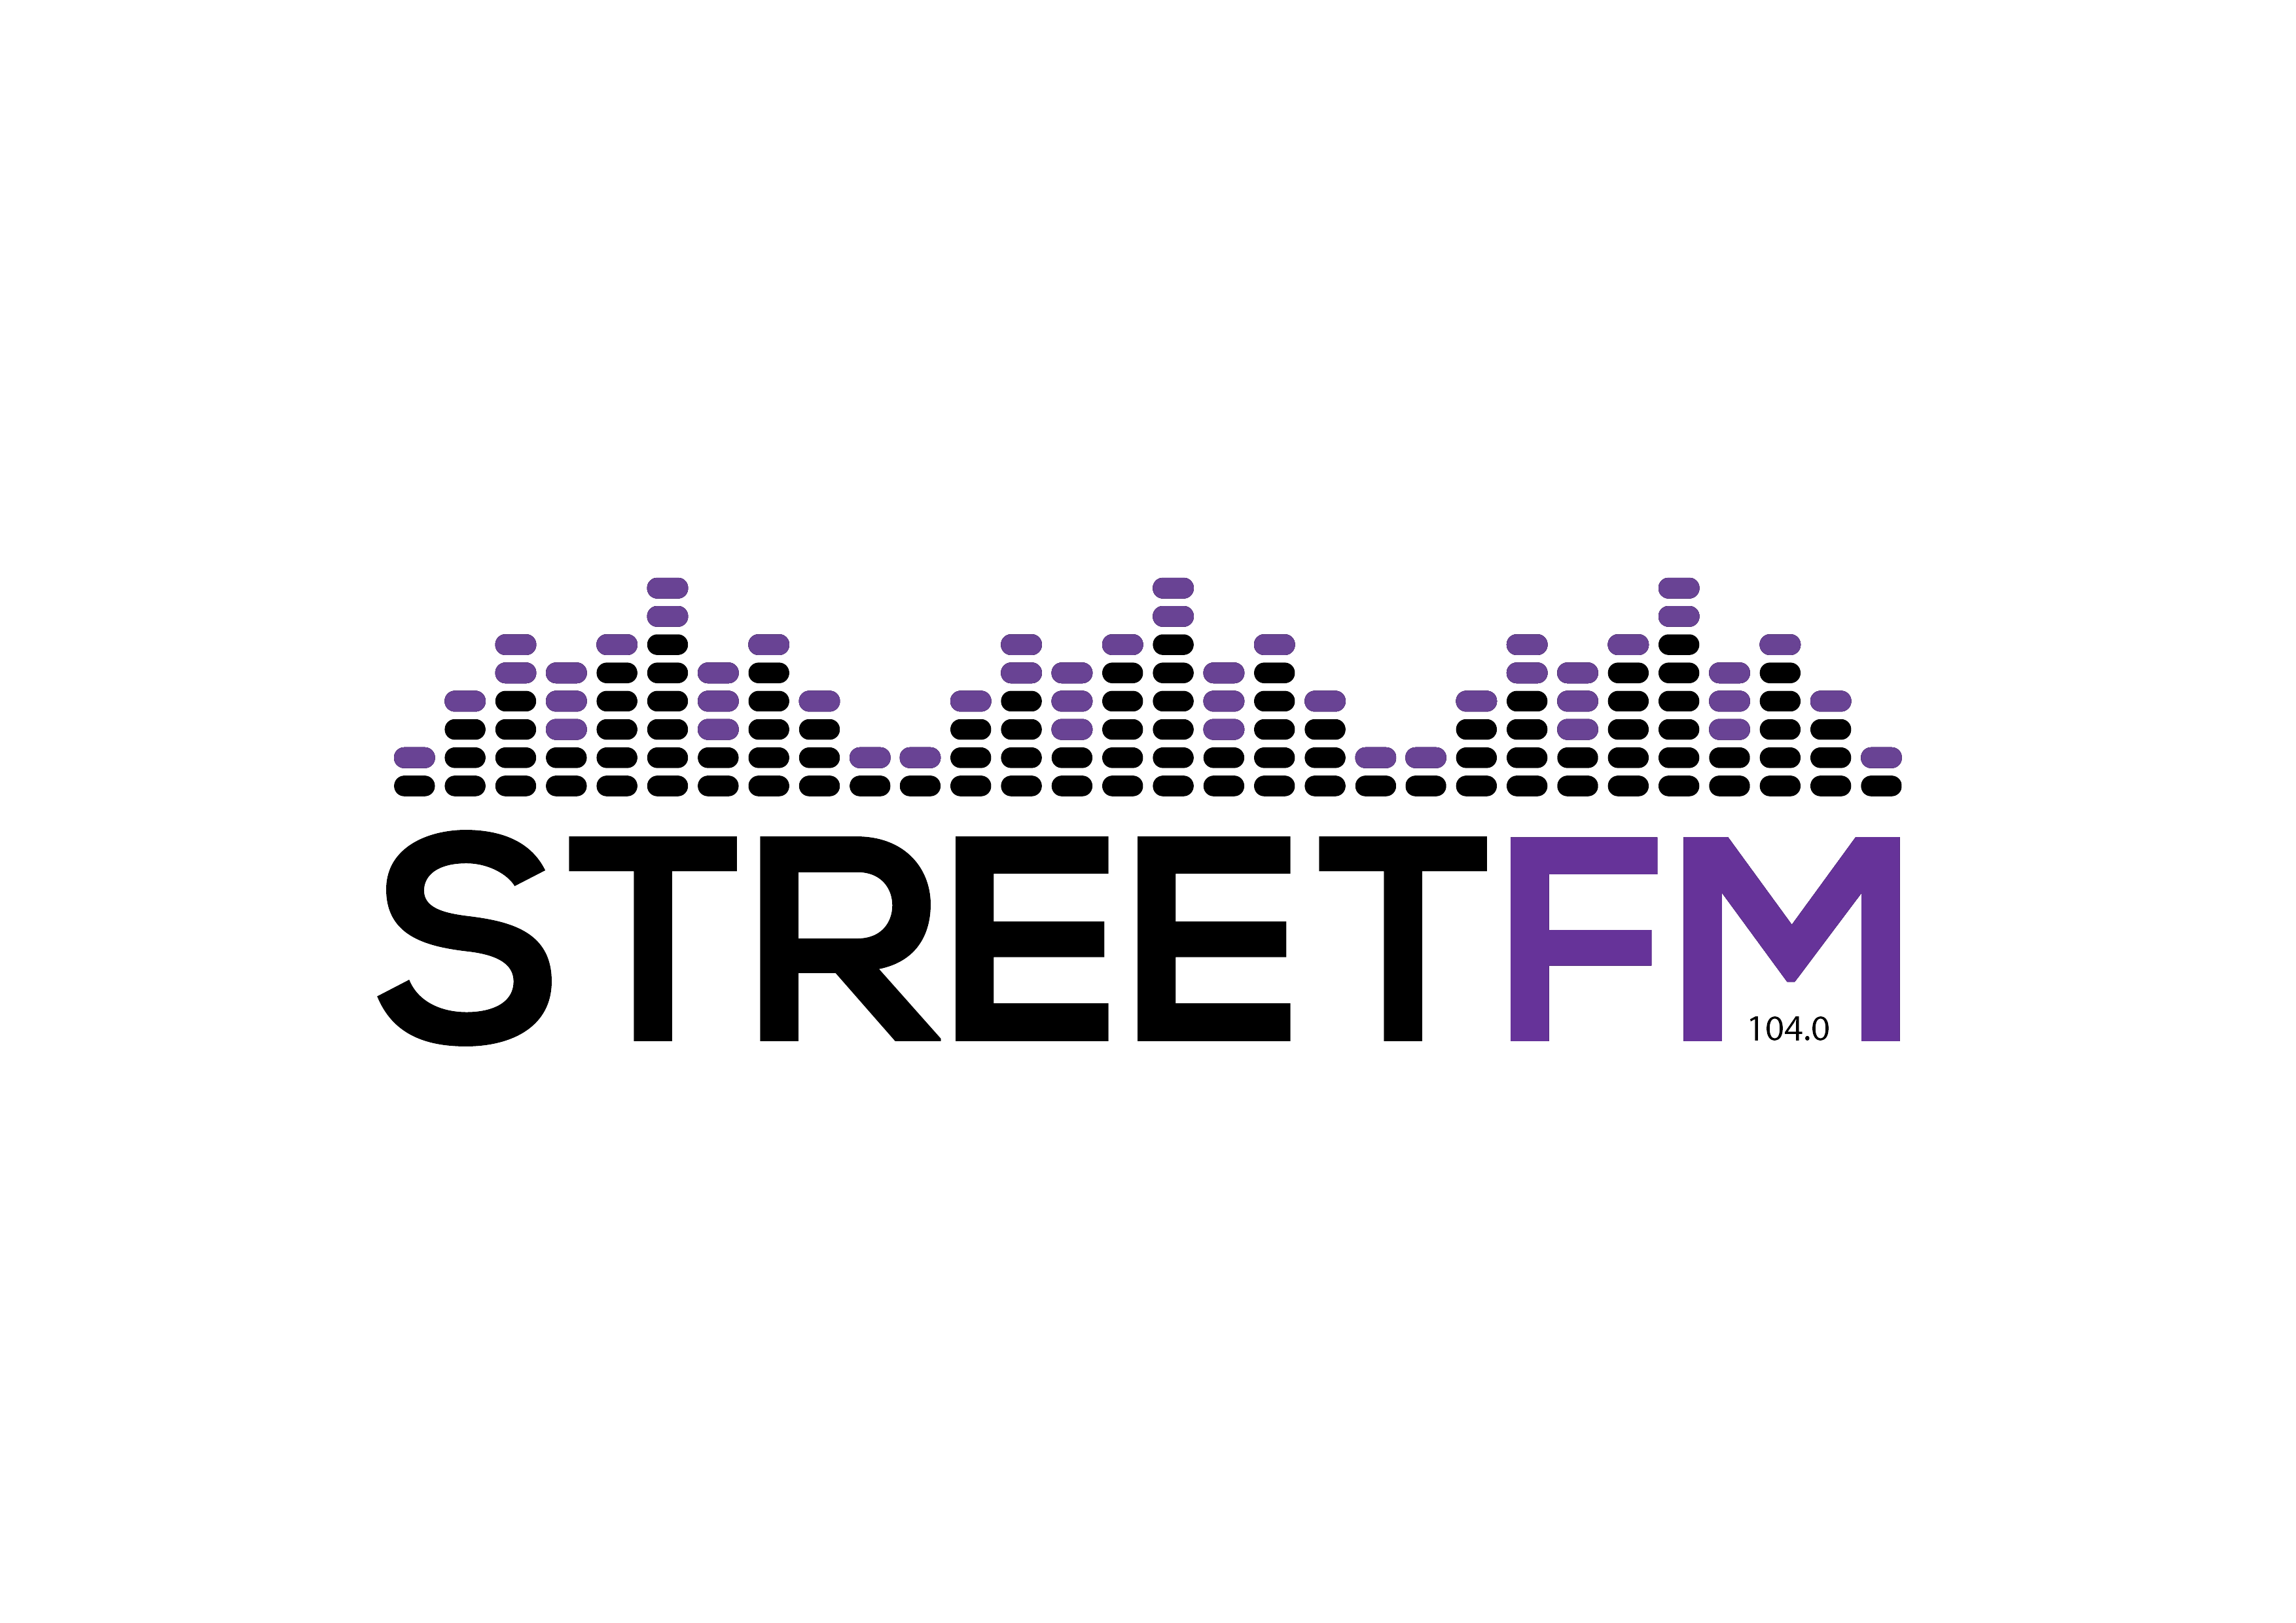 STREET FM 104,0 - THE HOME OF NEW MUSIC